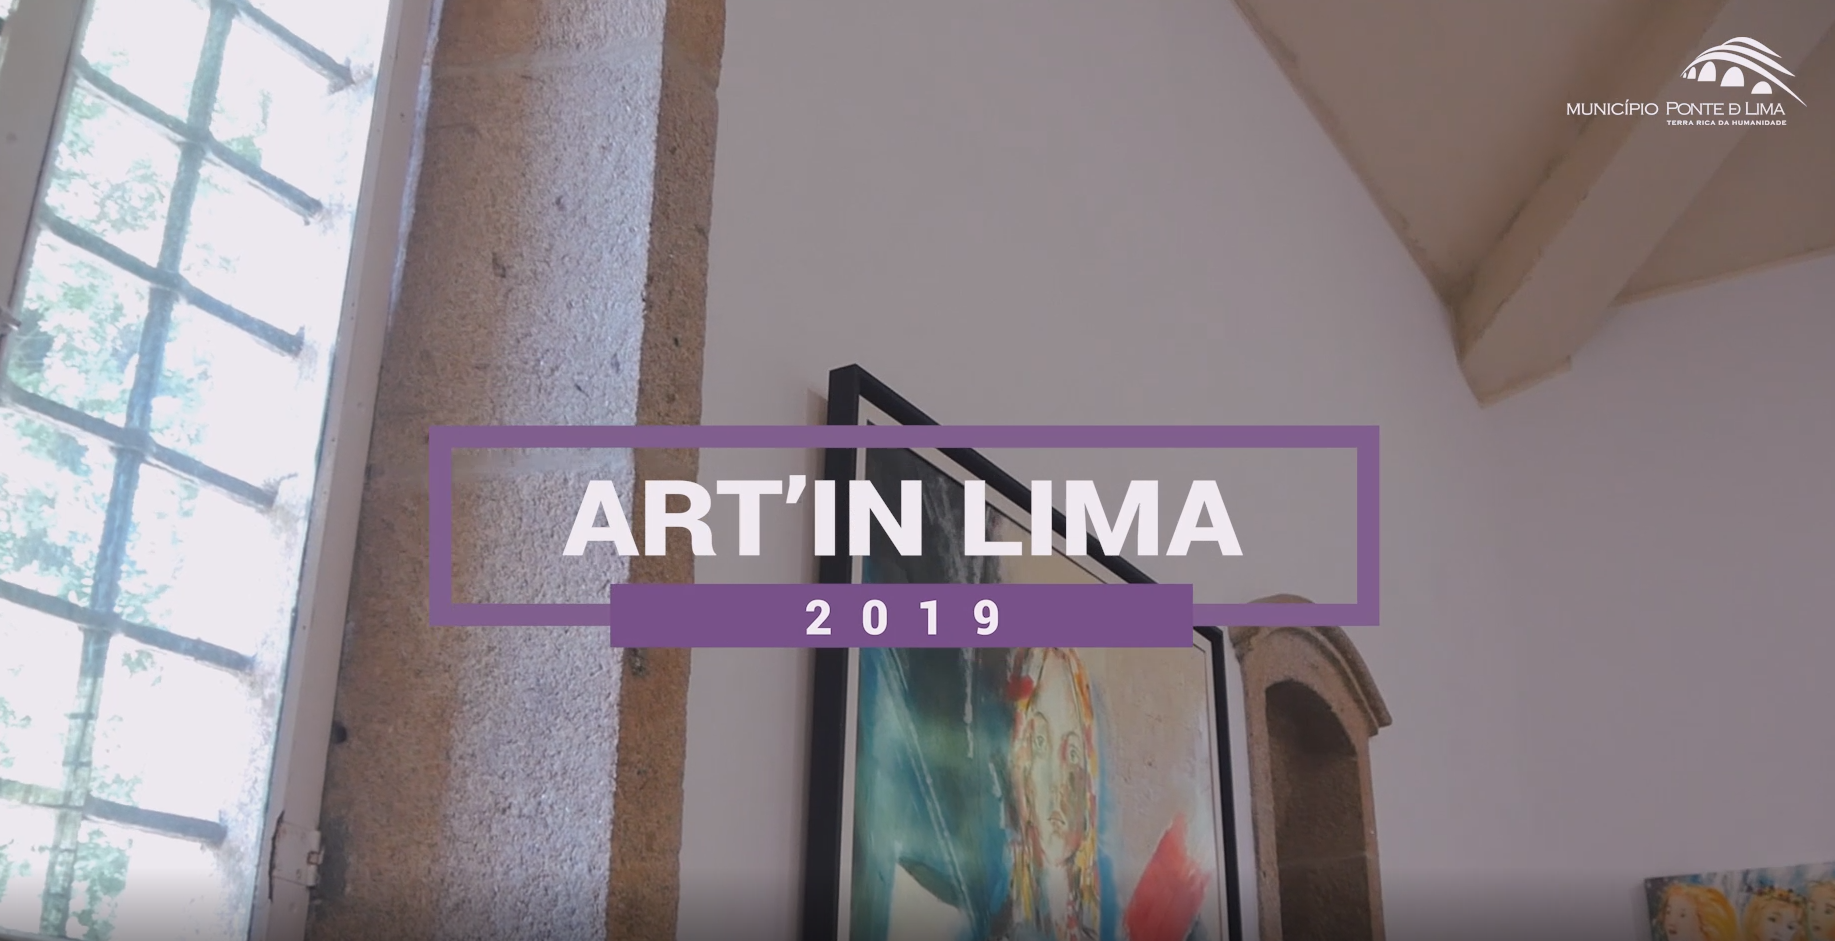 News Report by Alto Minho TV at the Opening of ART'IN LIMA 2019